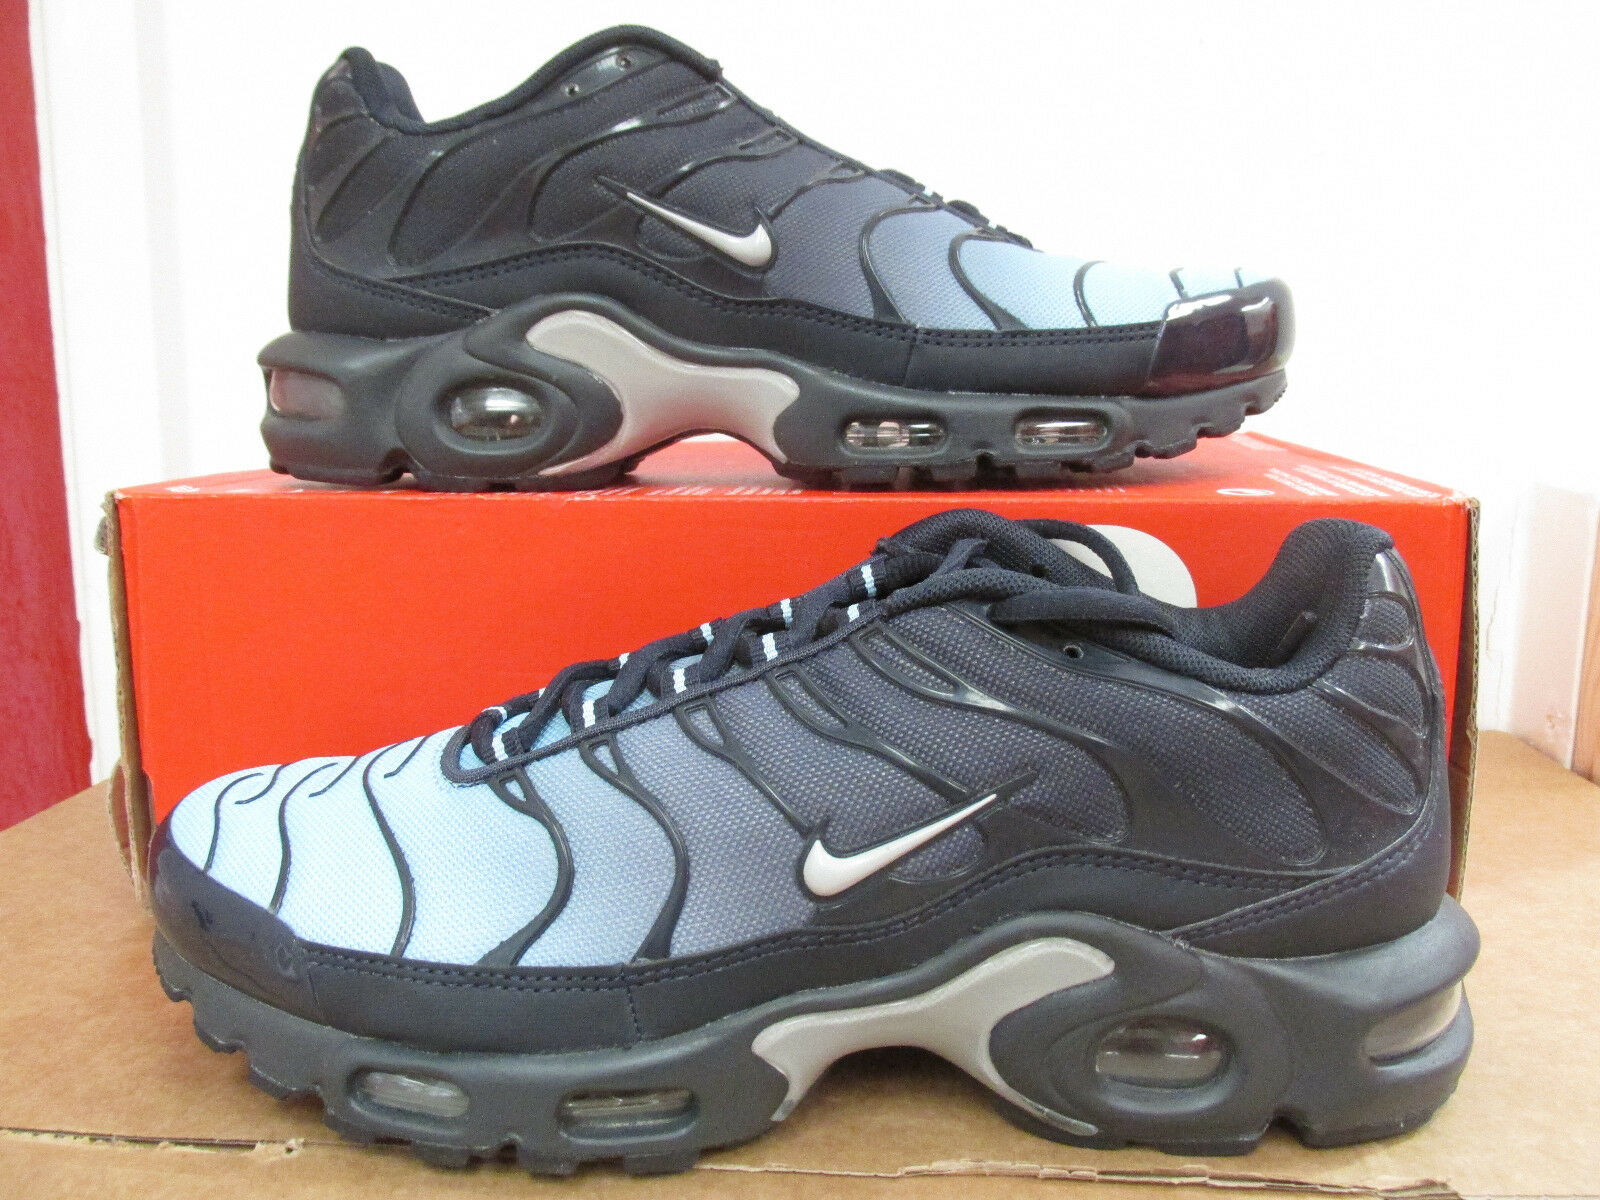 Nike mens air max plus 604133 424 trainers shoes sneakers CLEARANCE